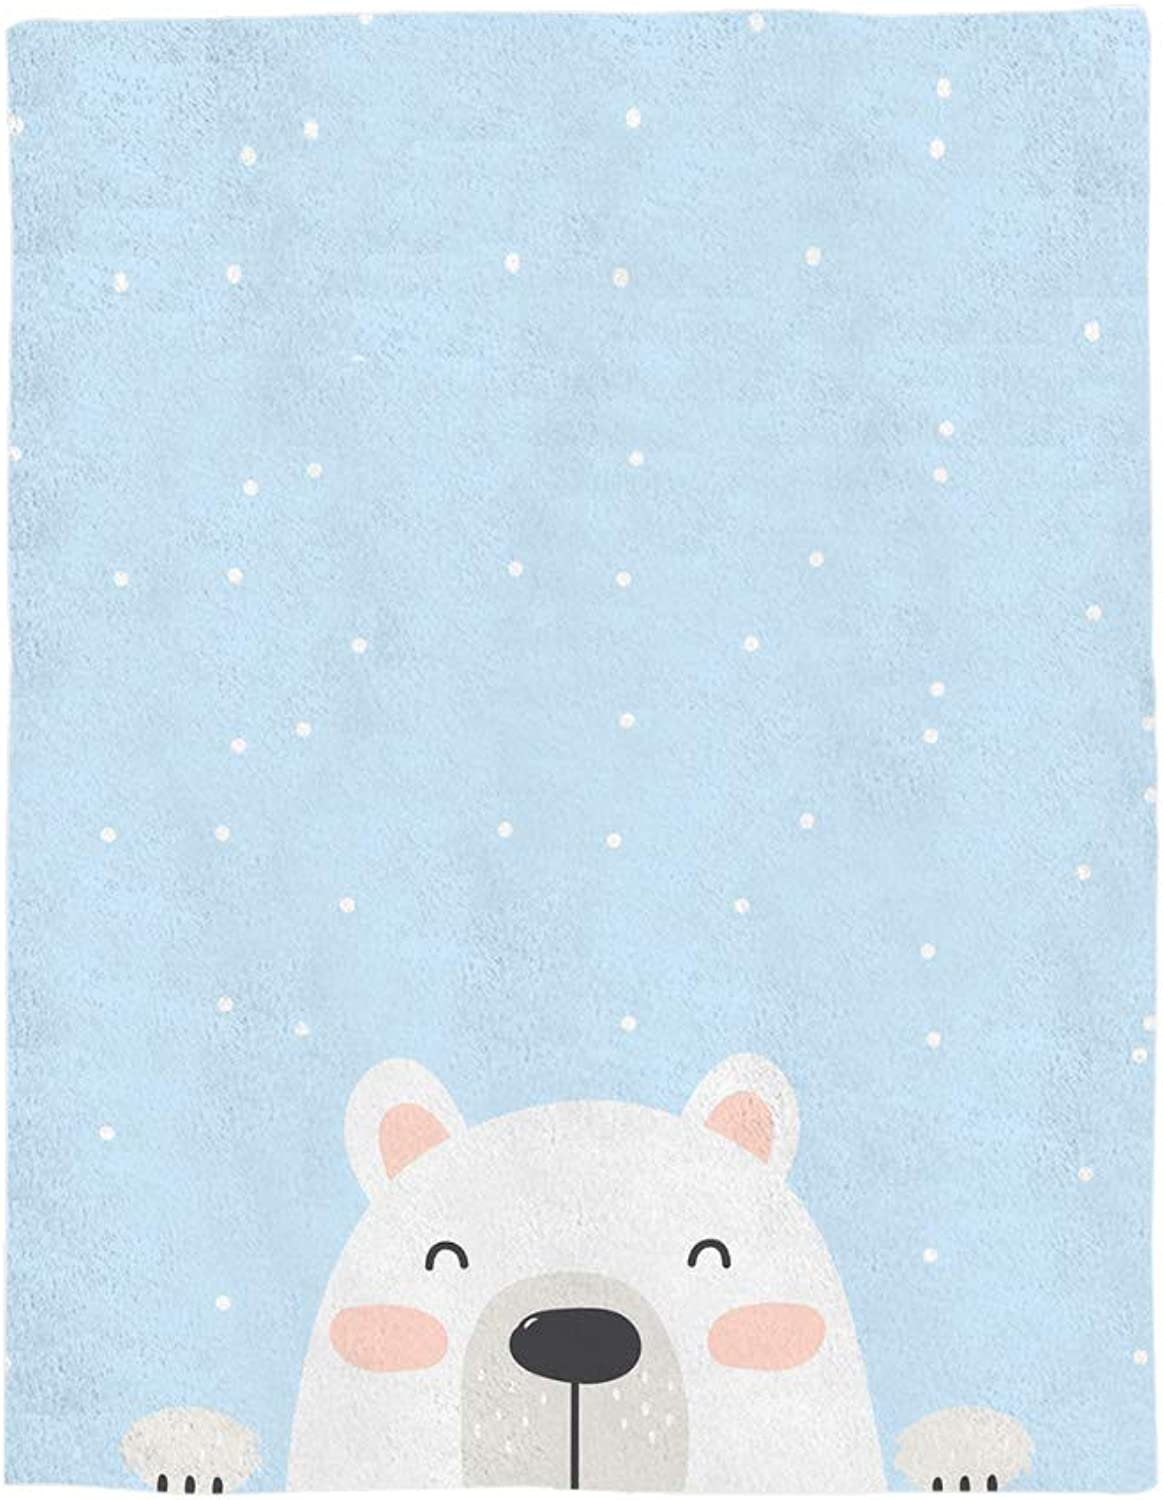 COLORSUM Cute Bear Soft Plush Throw Blanket 50x60 inch Printed Flannel Fleece Blanket Bedroom Living Room Couch Bed Sofa  Baby Cartoon Animal bluee Background